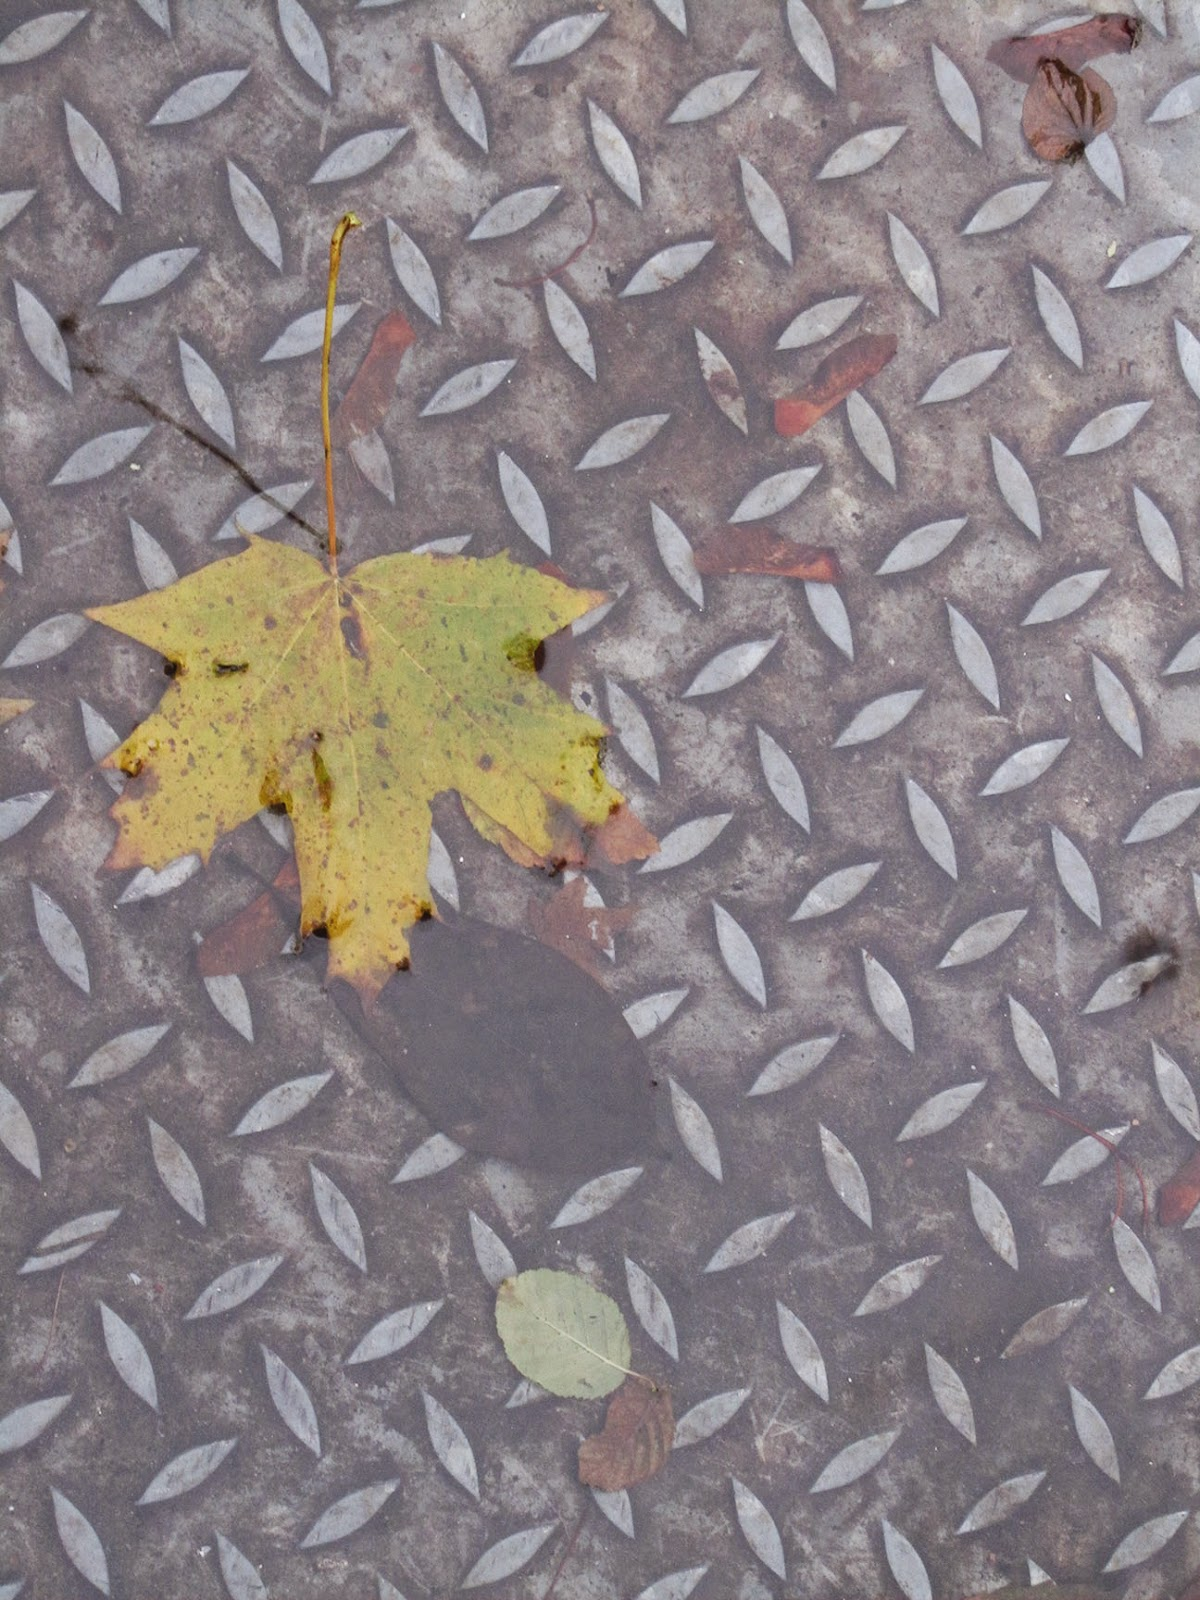 leaf in a puddle of water